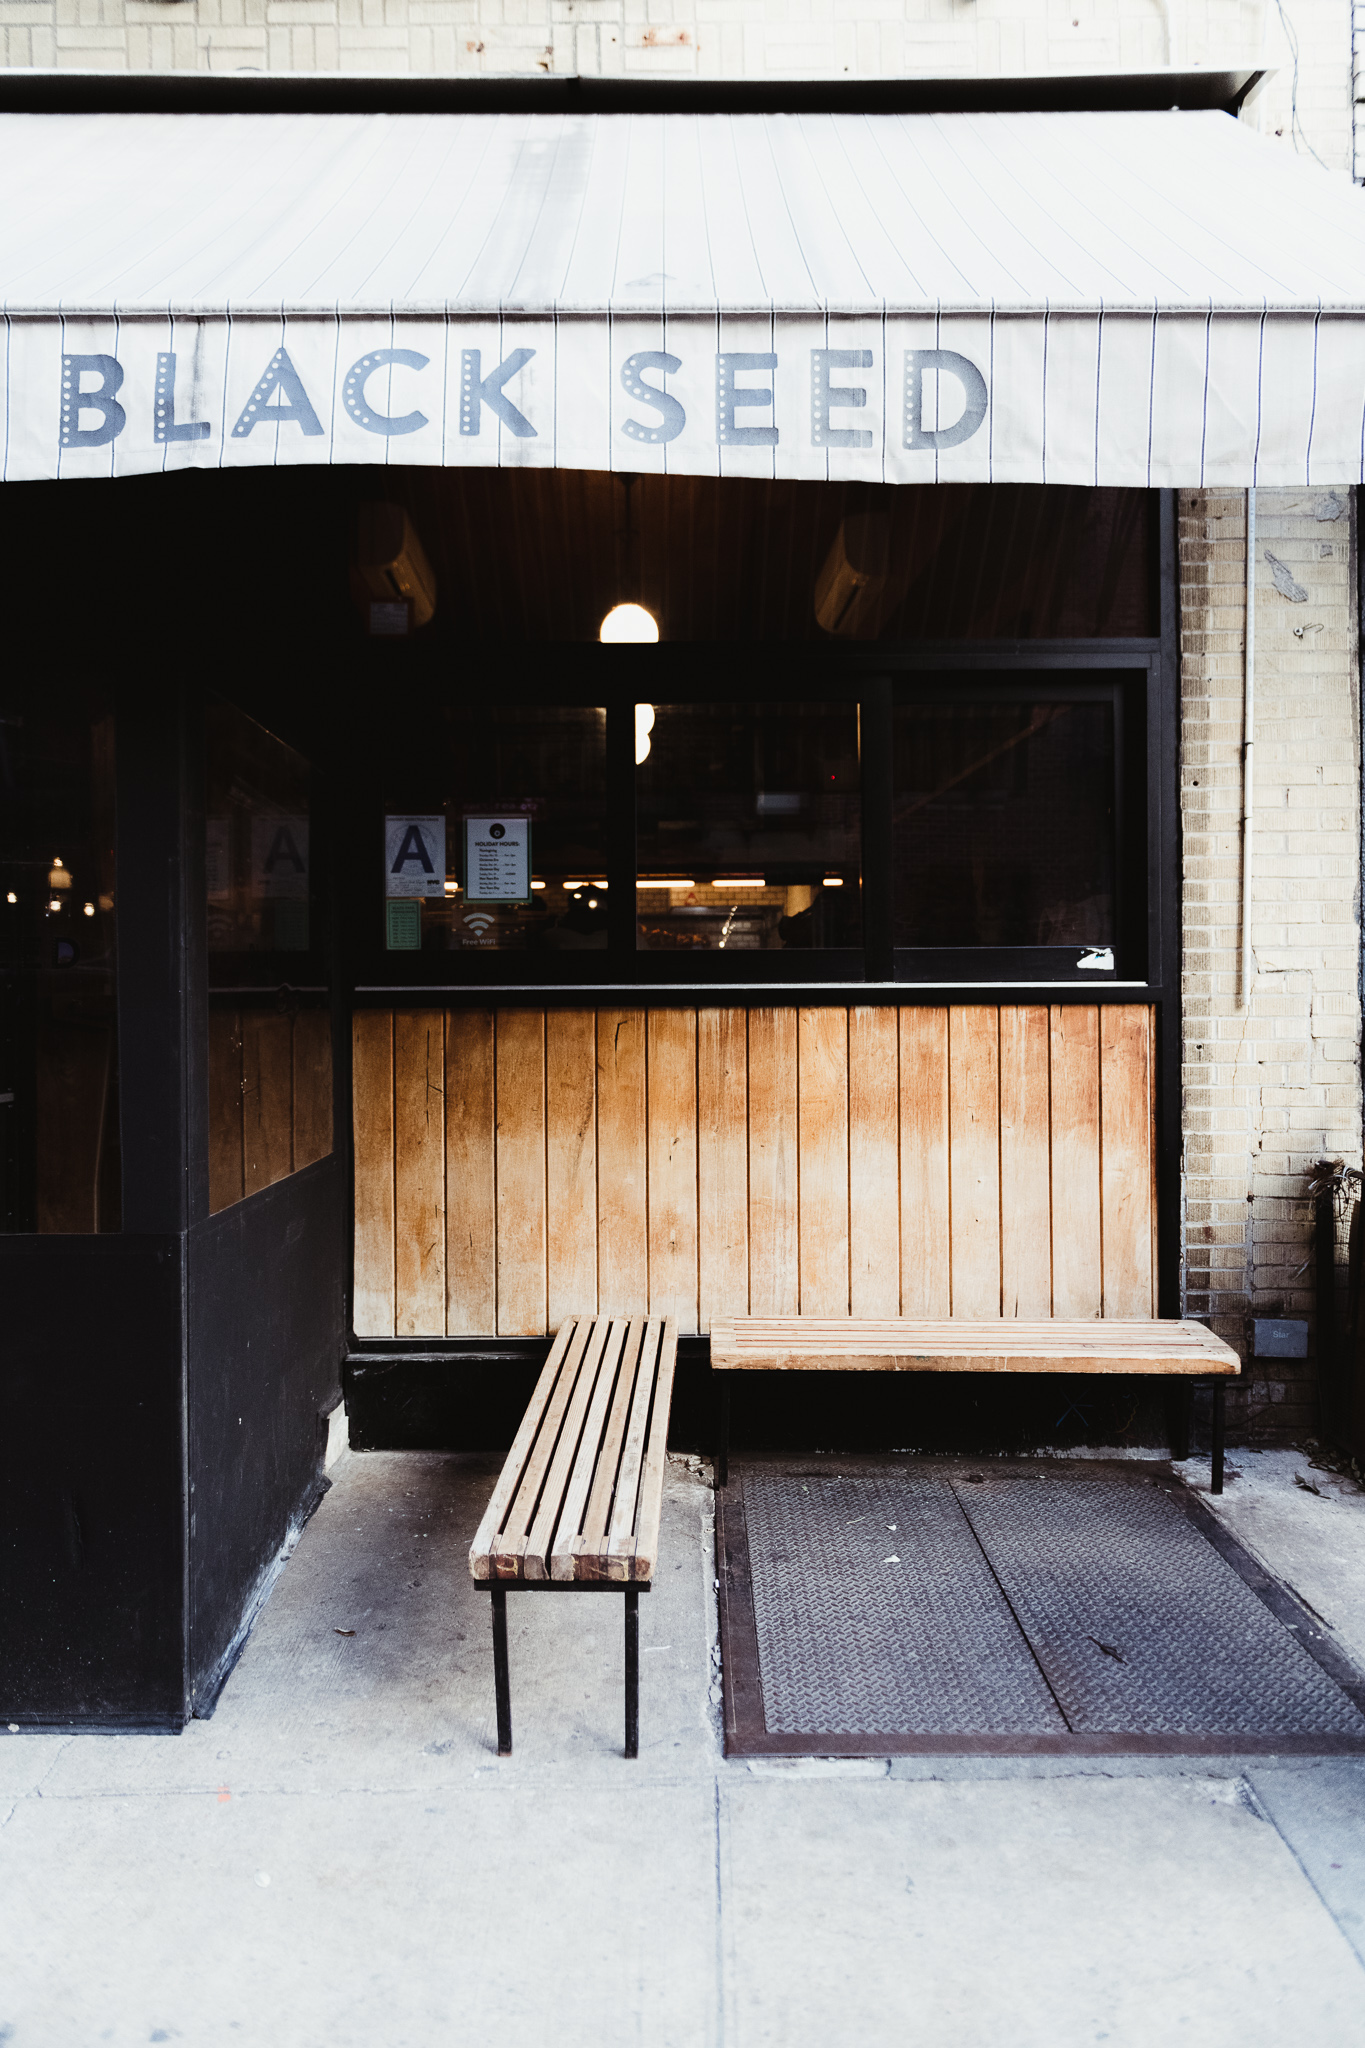 blackseedDSC_2133.jpg